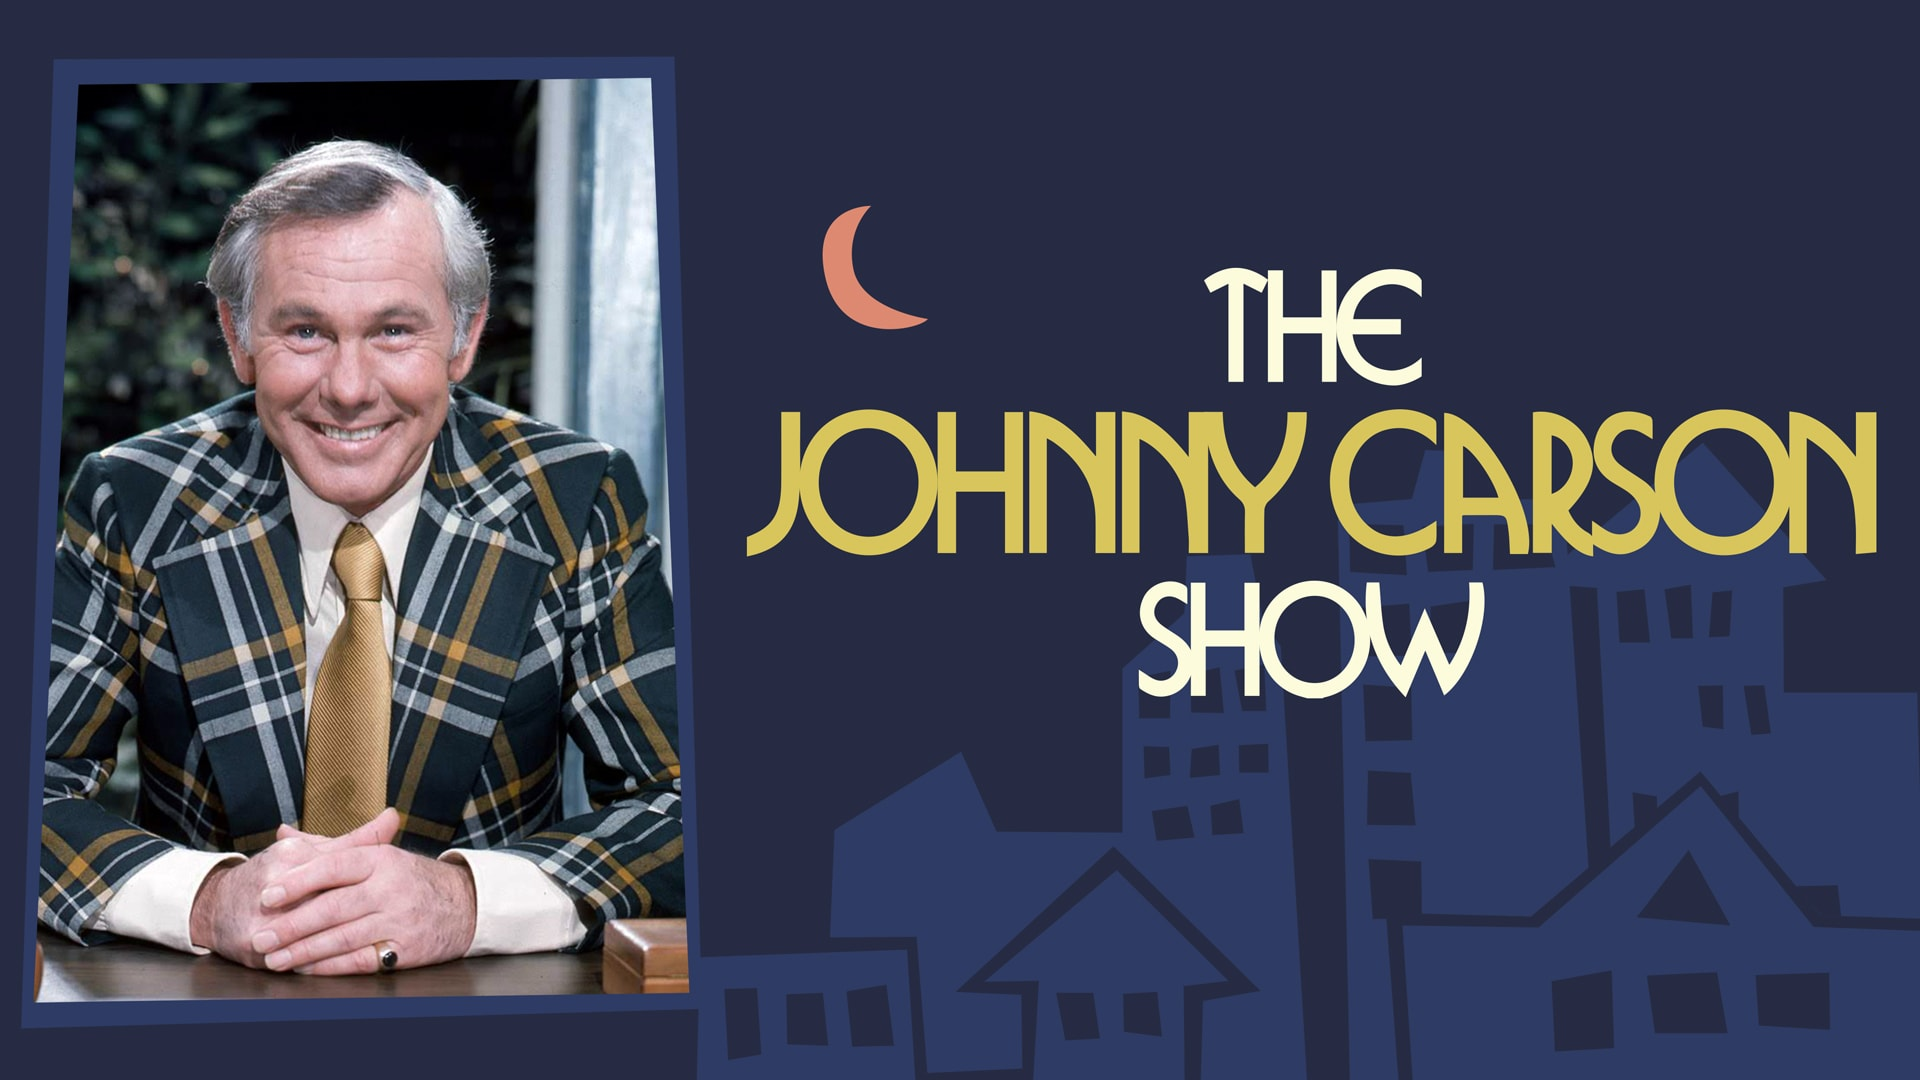 The Johnny Carson Show: Comic Legends Of The '80s - John Candy (5/17/91)